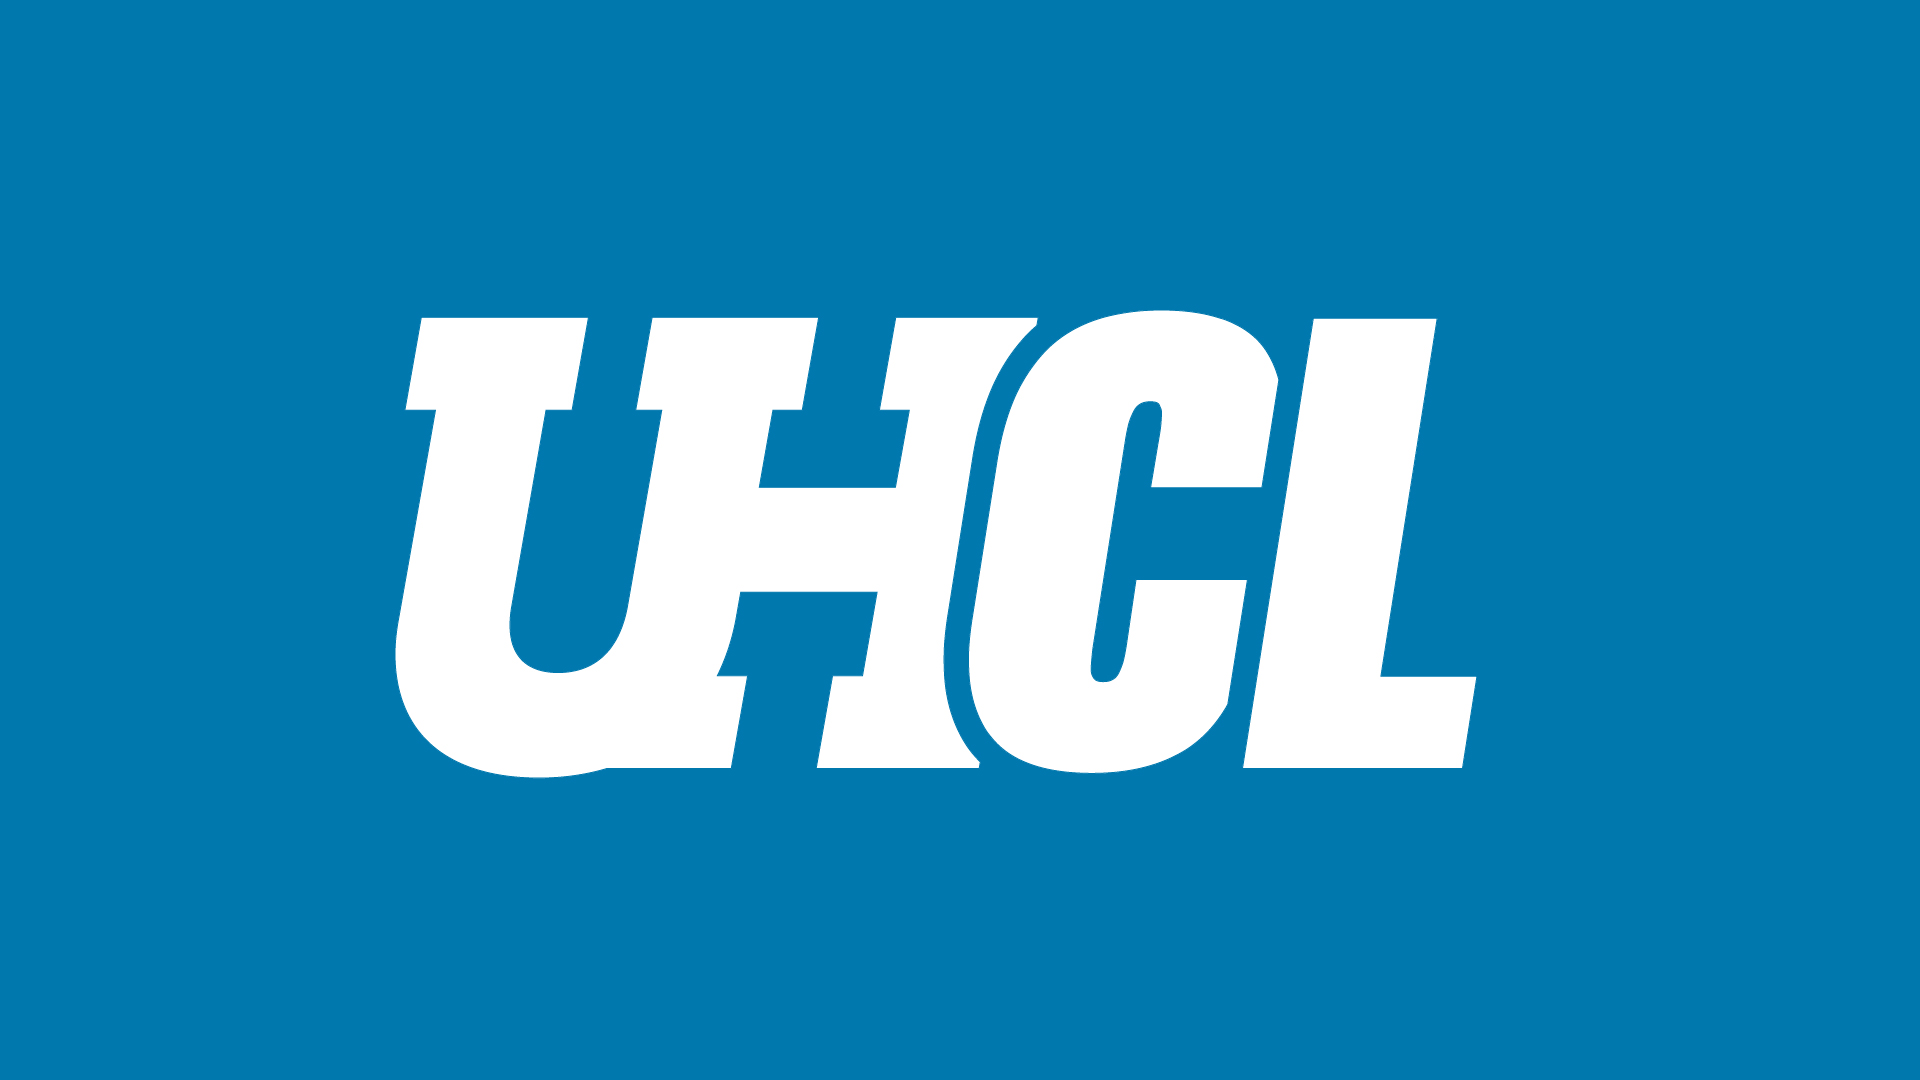 UHCL welcomes new associate vice president for facilities management and construction